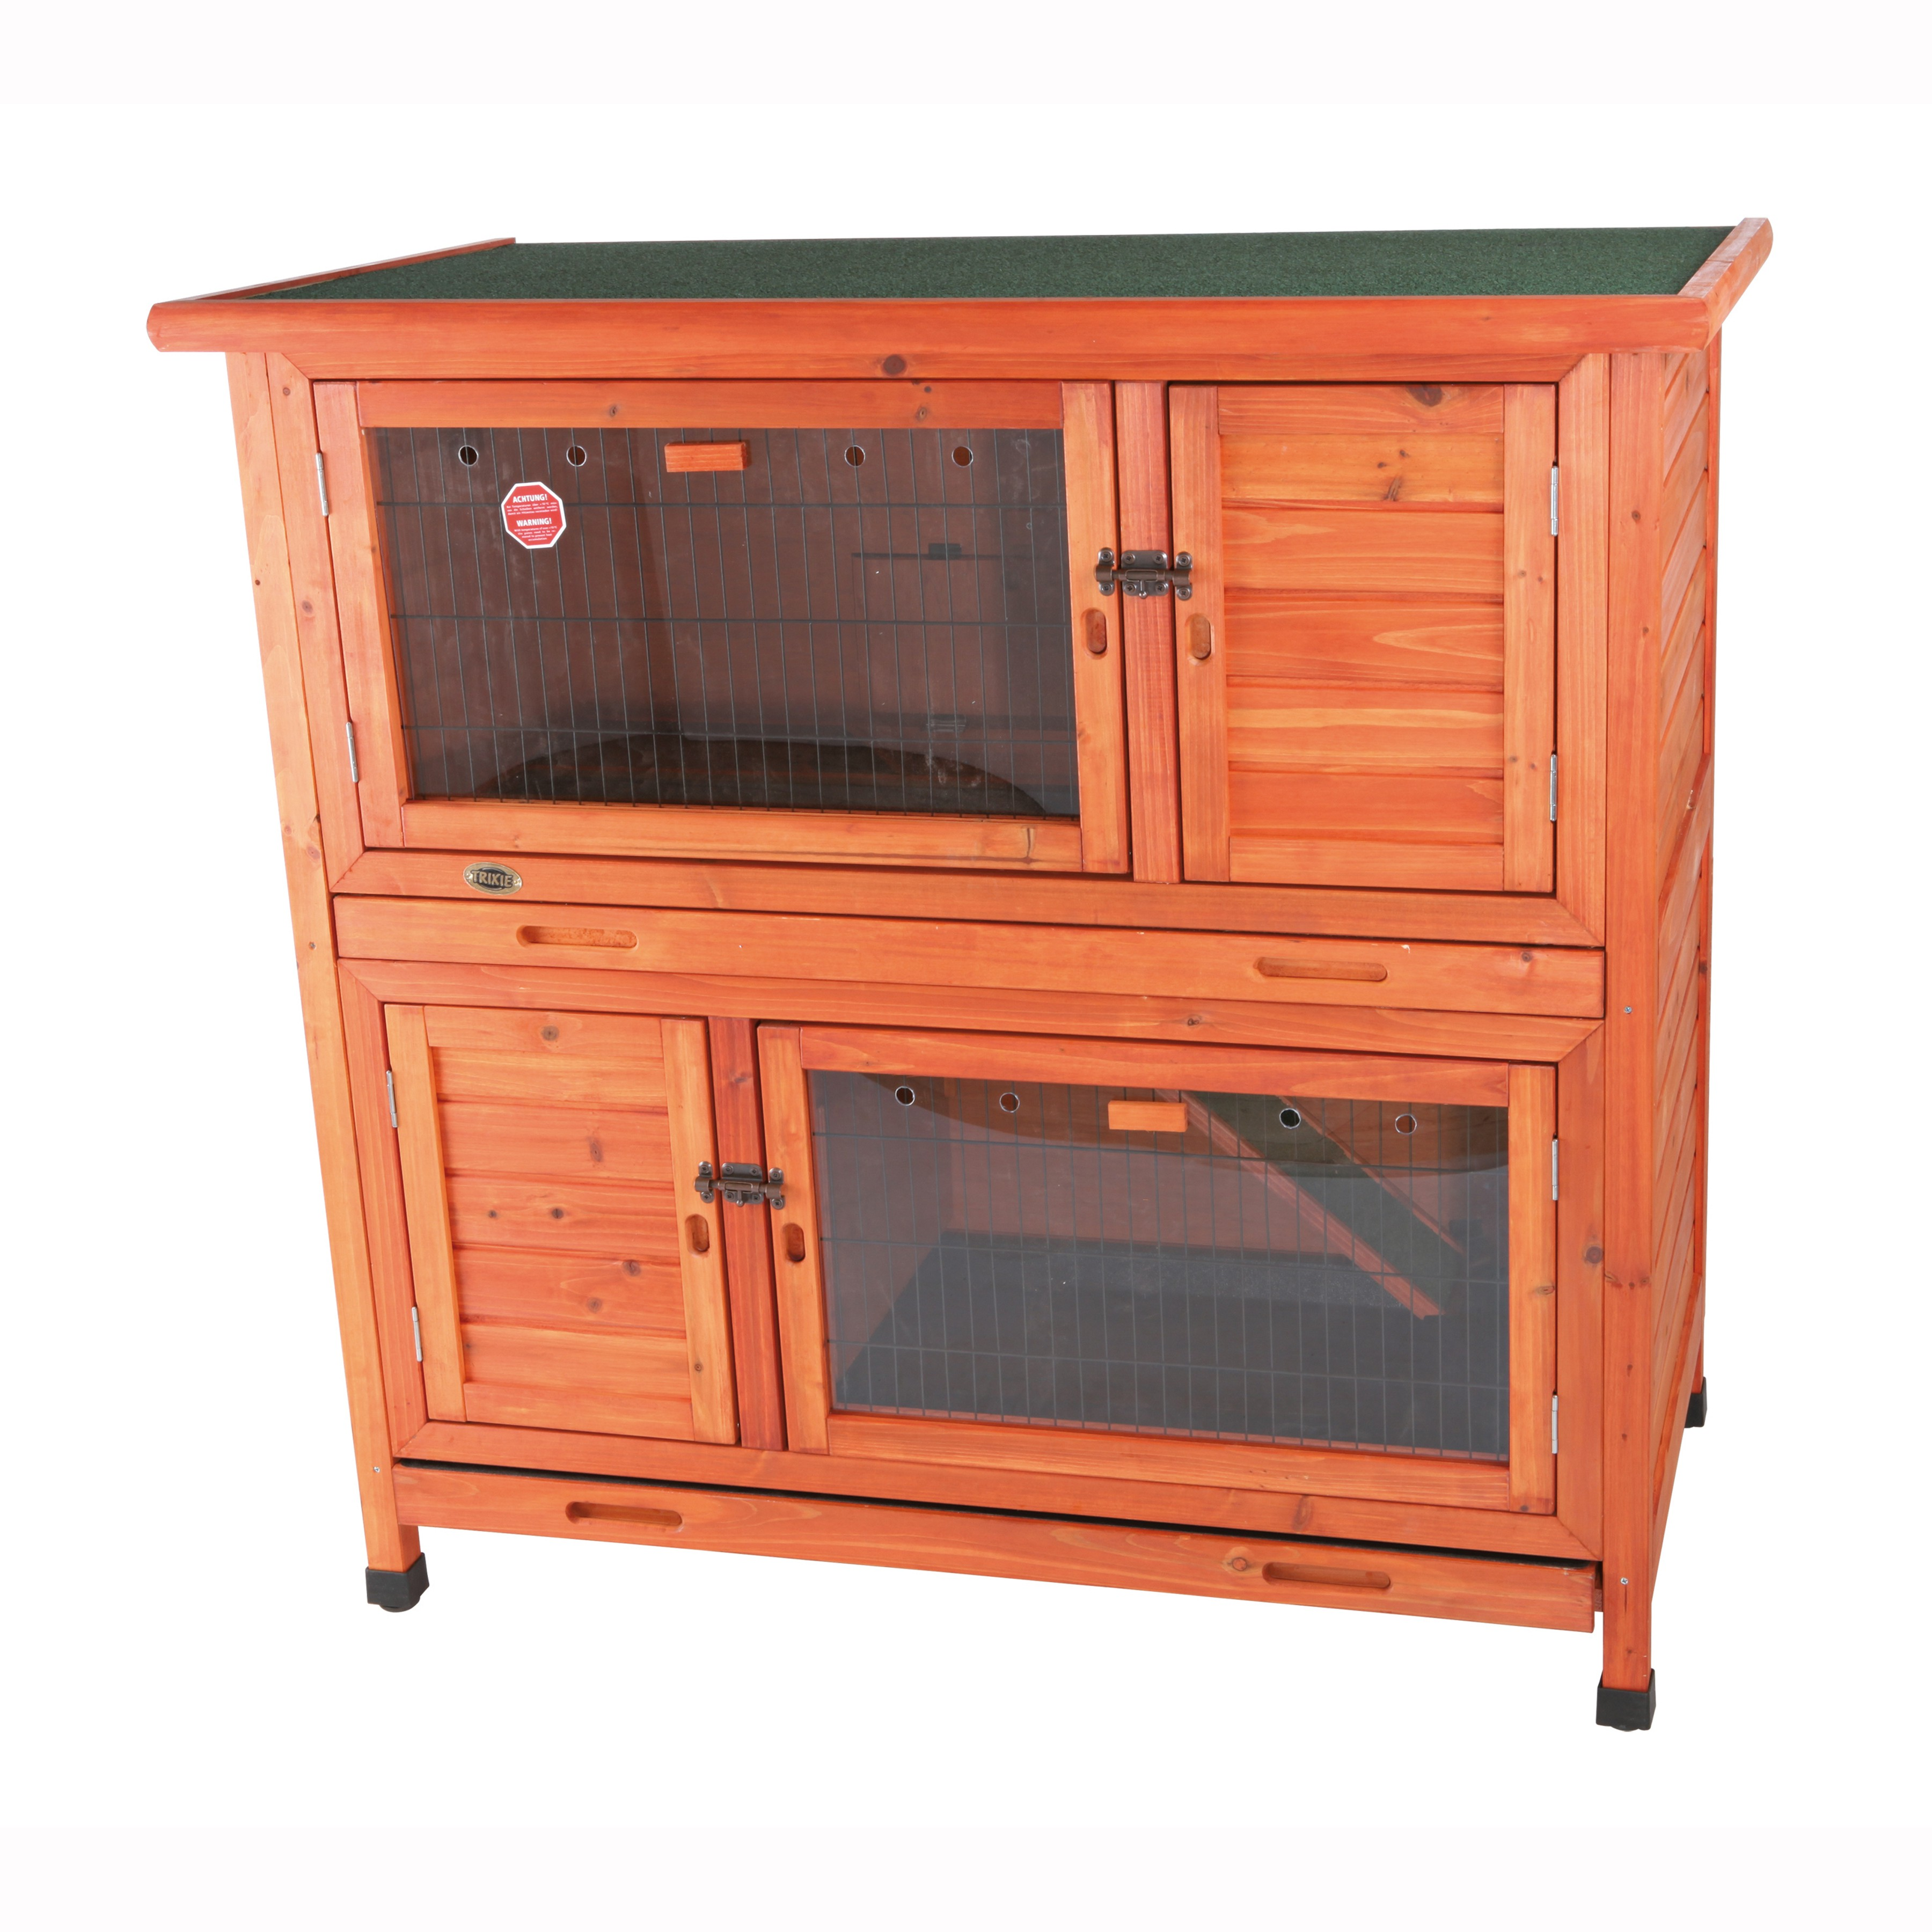 albert outdoor rabbit wood run shop products new solid millie img omlet exploring up hutch set their